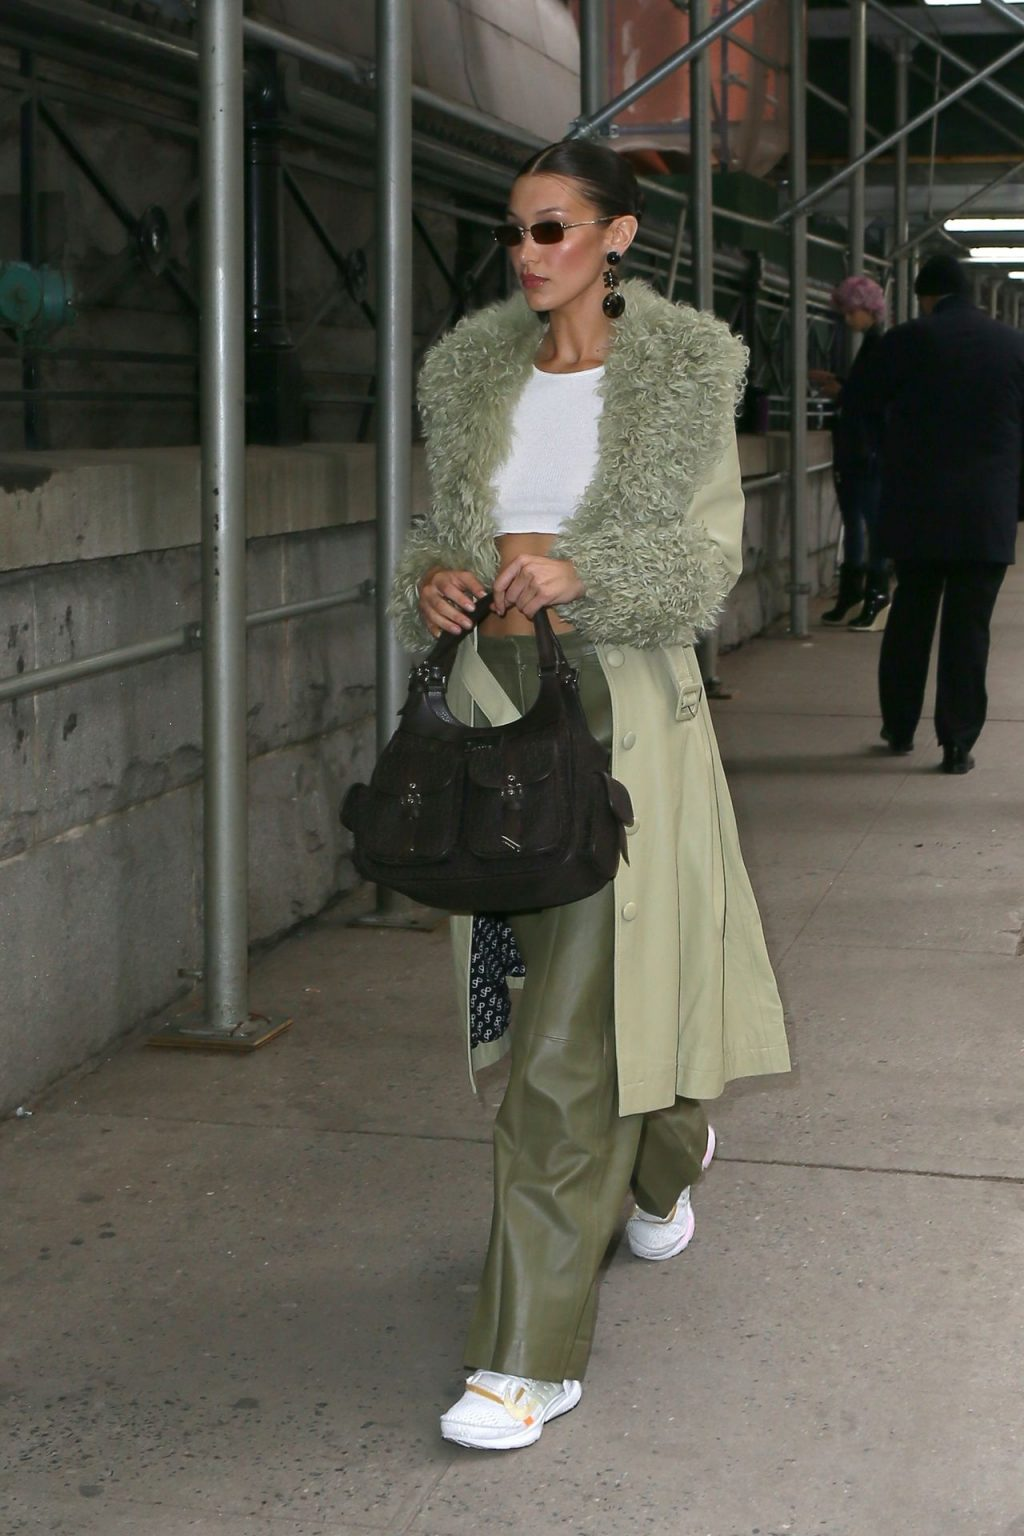 Bella Hadid See through The Fappening Blog 23 1024x1536 - Braless Bella Hadid Arrives at the Park Avenue Armory for the Marc Jacobs Fashion Show (59 Photos)